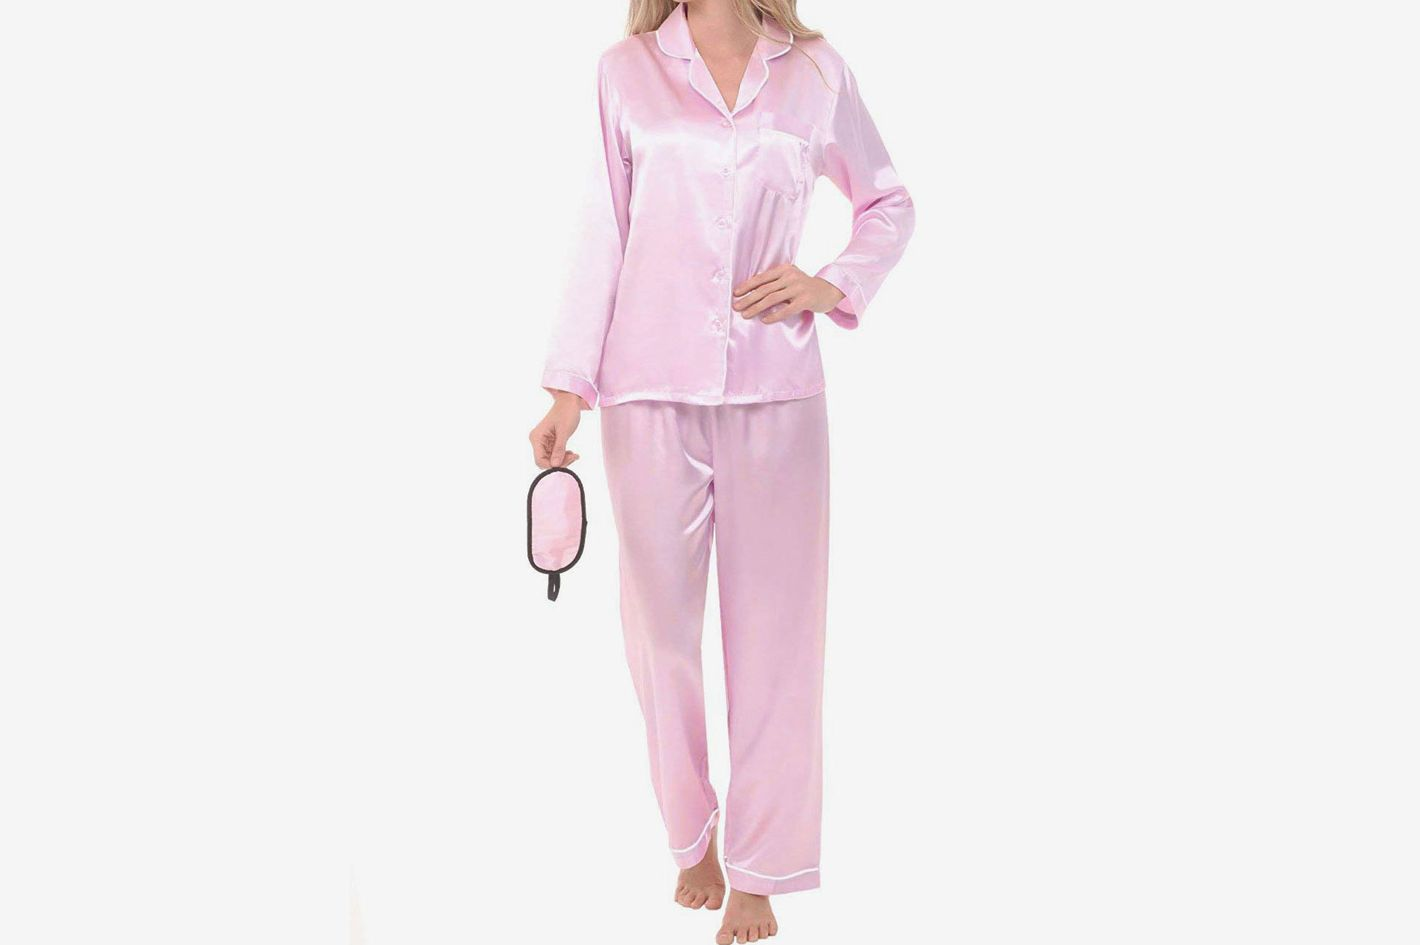 cf22e02efb Alexander Del Rossa Women s Solid Color Satin Pajamas